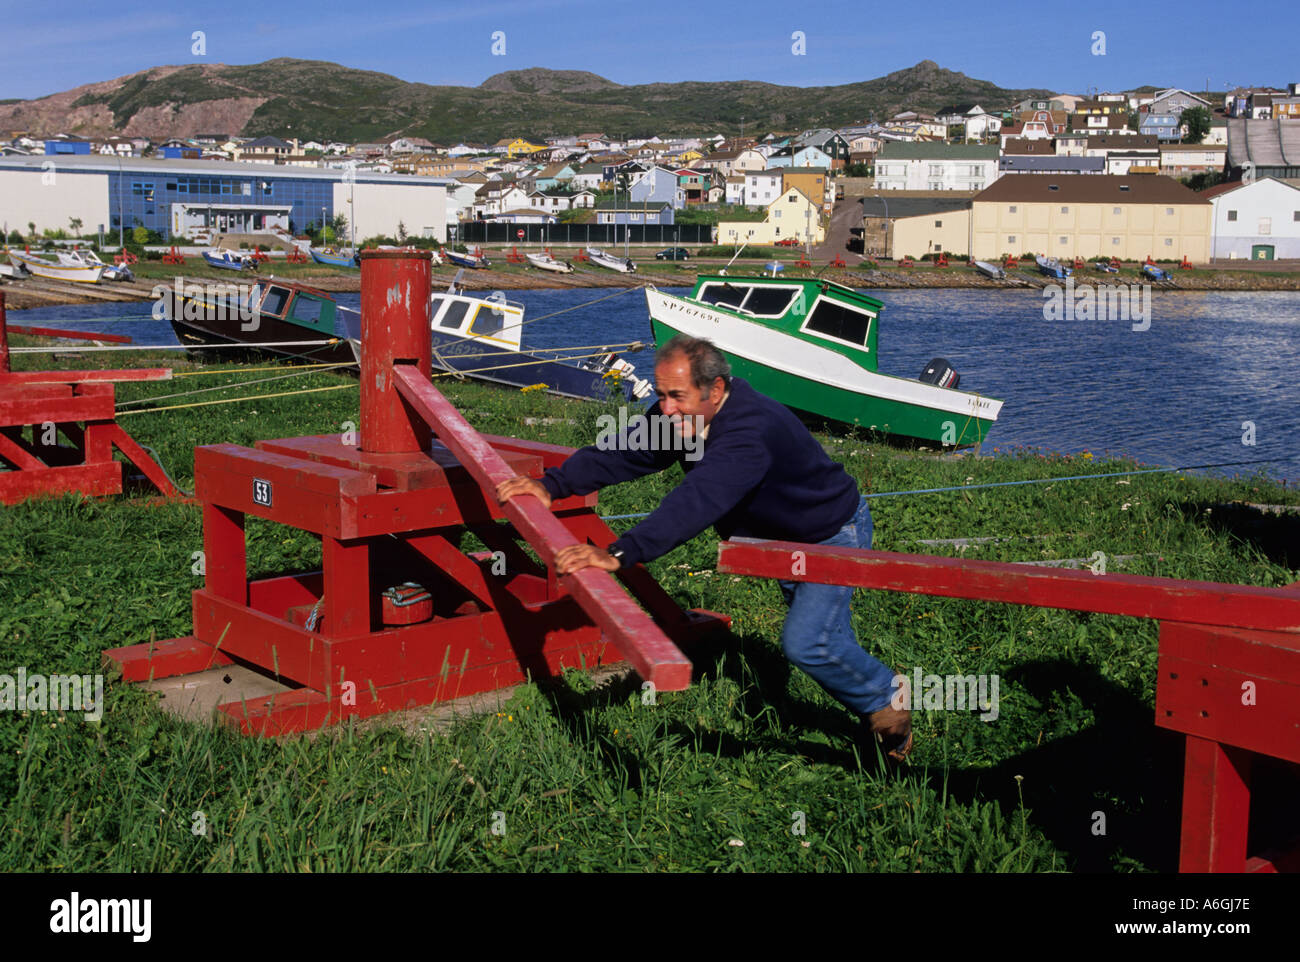 Man using cabestan, a  traditional boat winch, to haul his boat on shore. - Stock Image